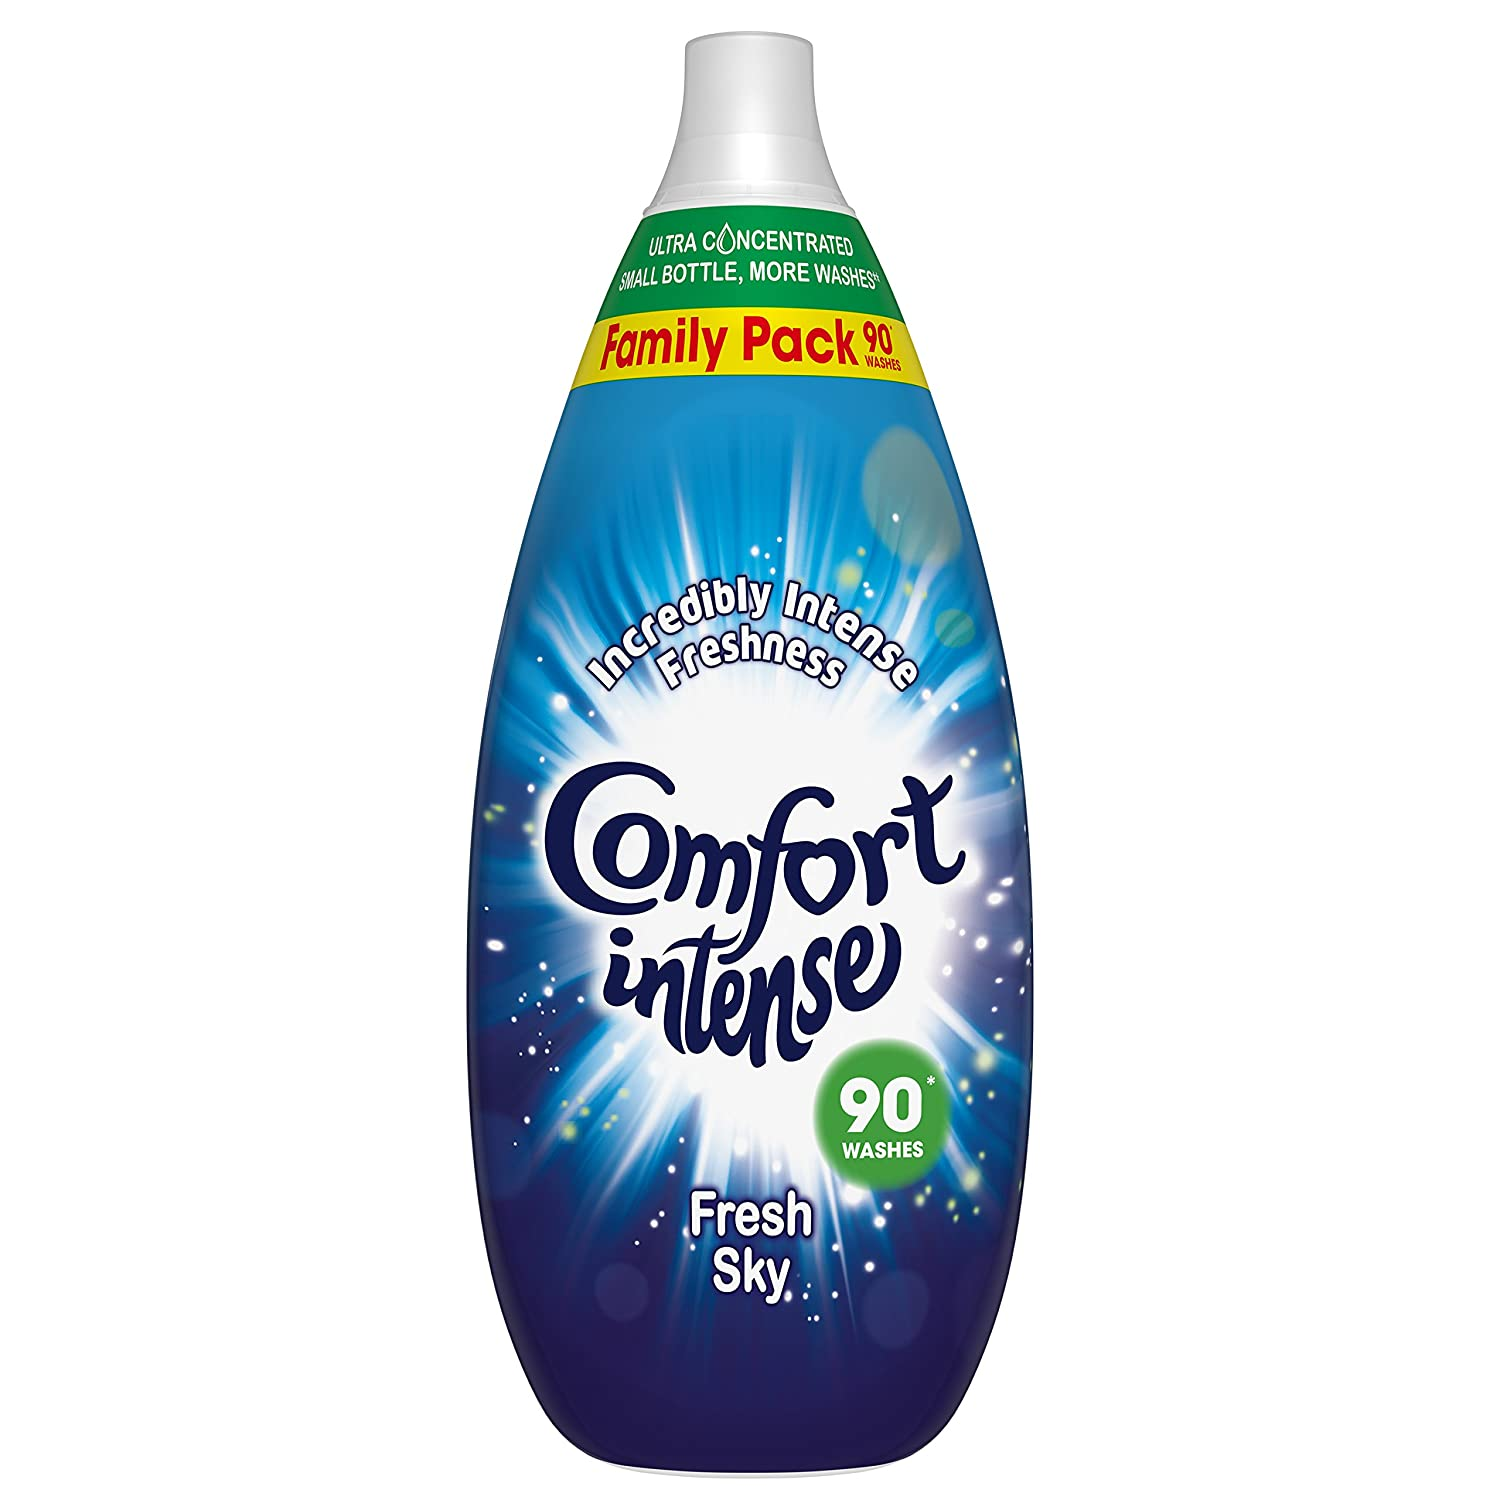 Comfort Intense Fresh Sky Fabric Conditioner, 90 Wash, 1.35 Litre, Pack of 6 Unilever UK 8710447374733